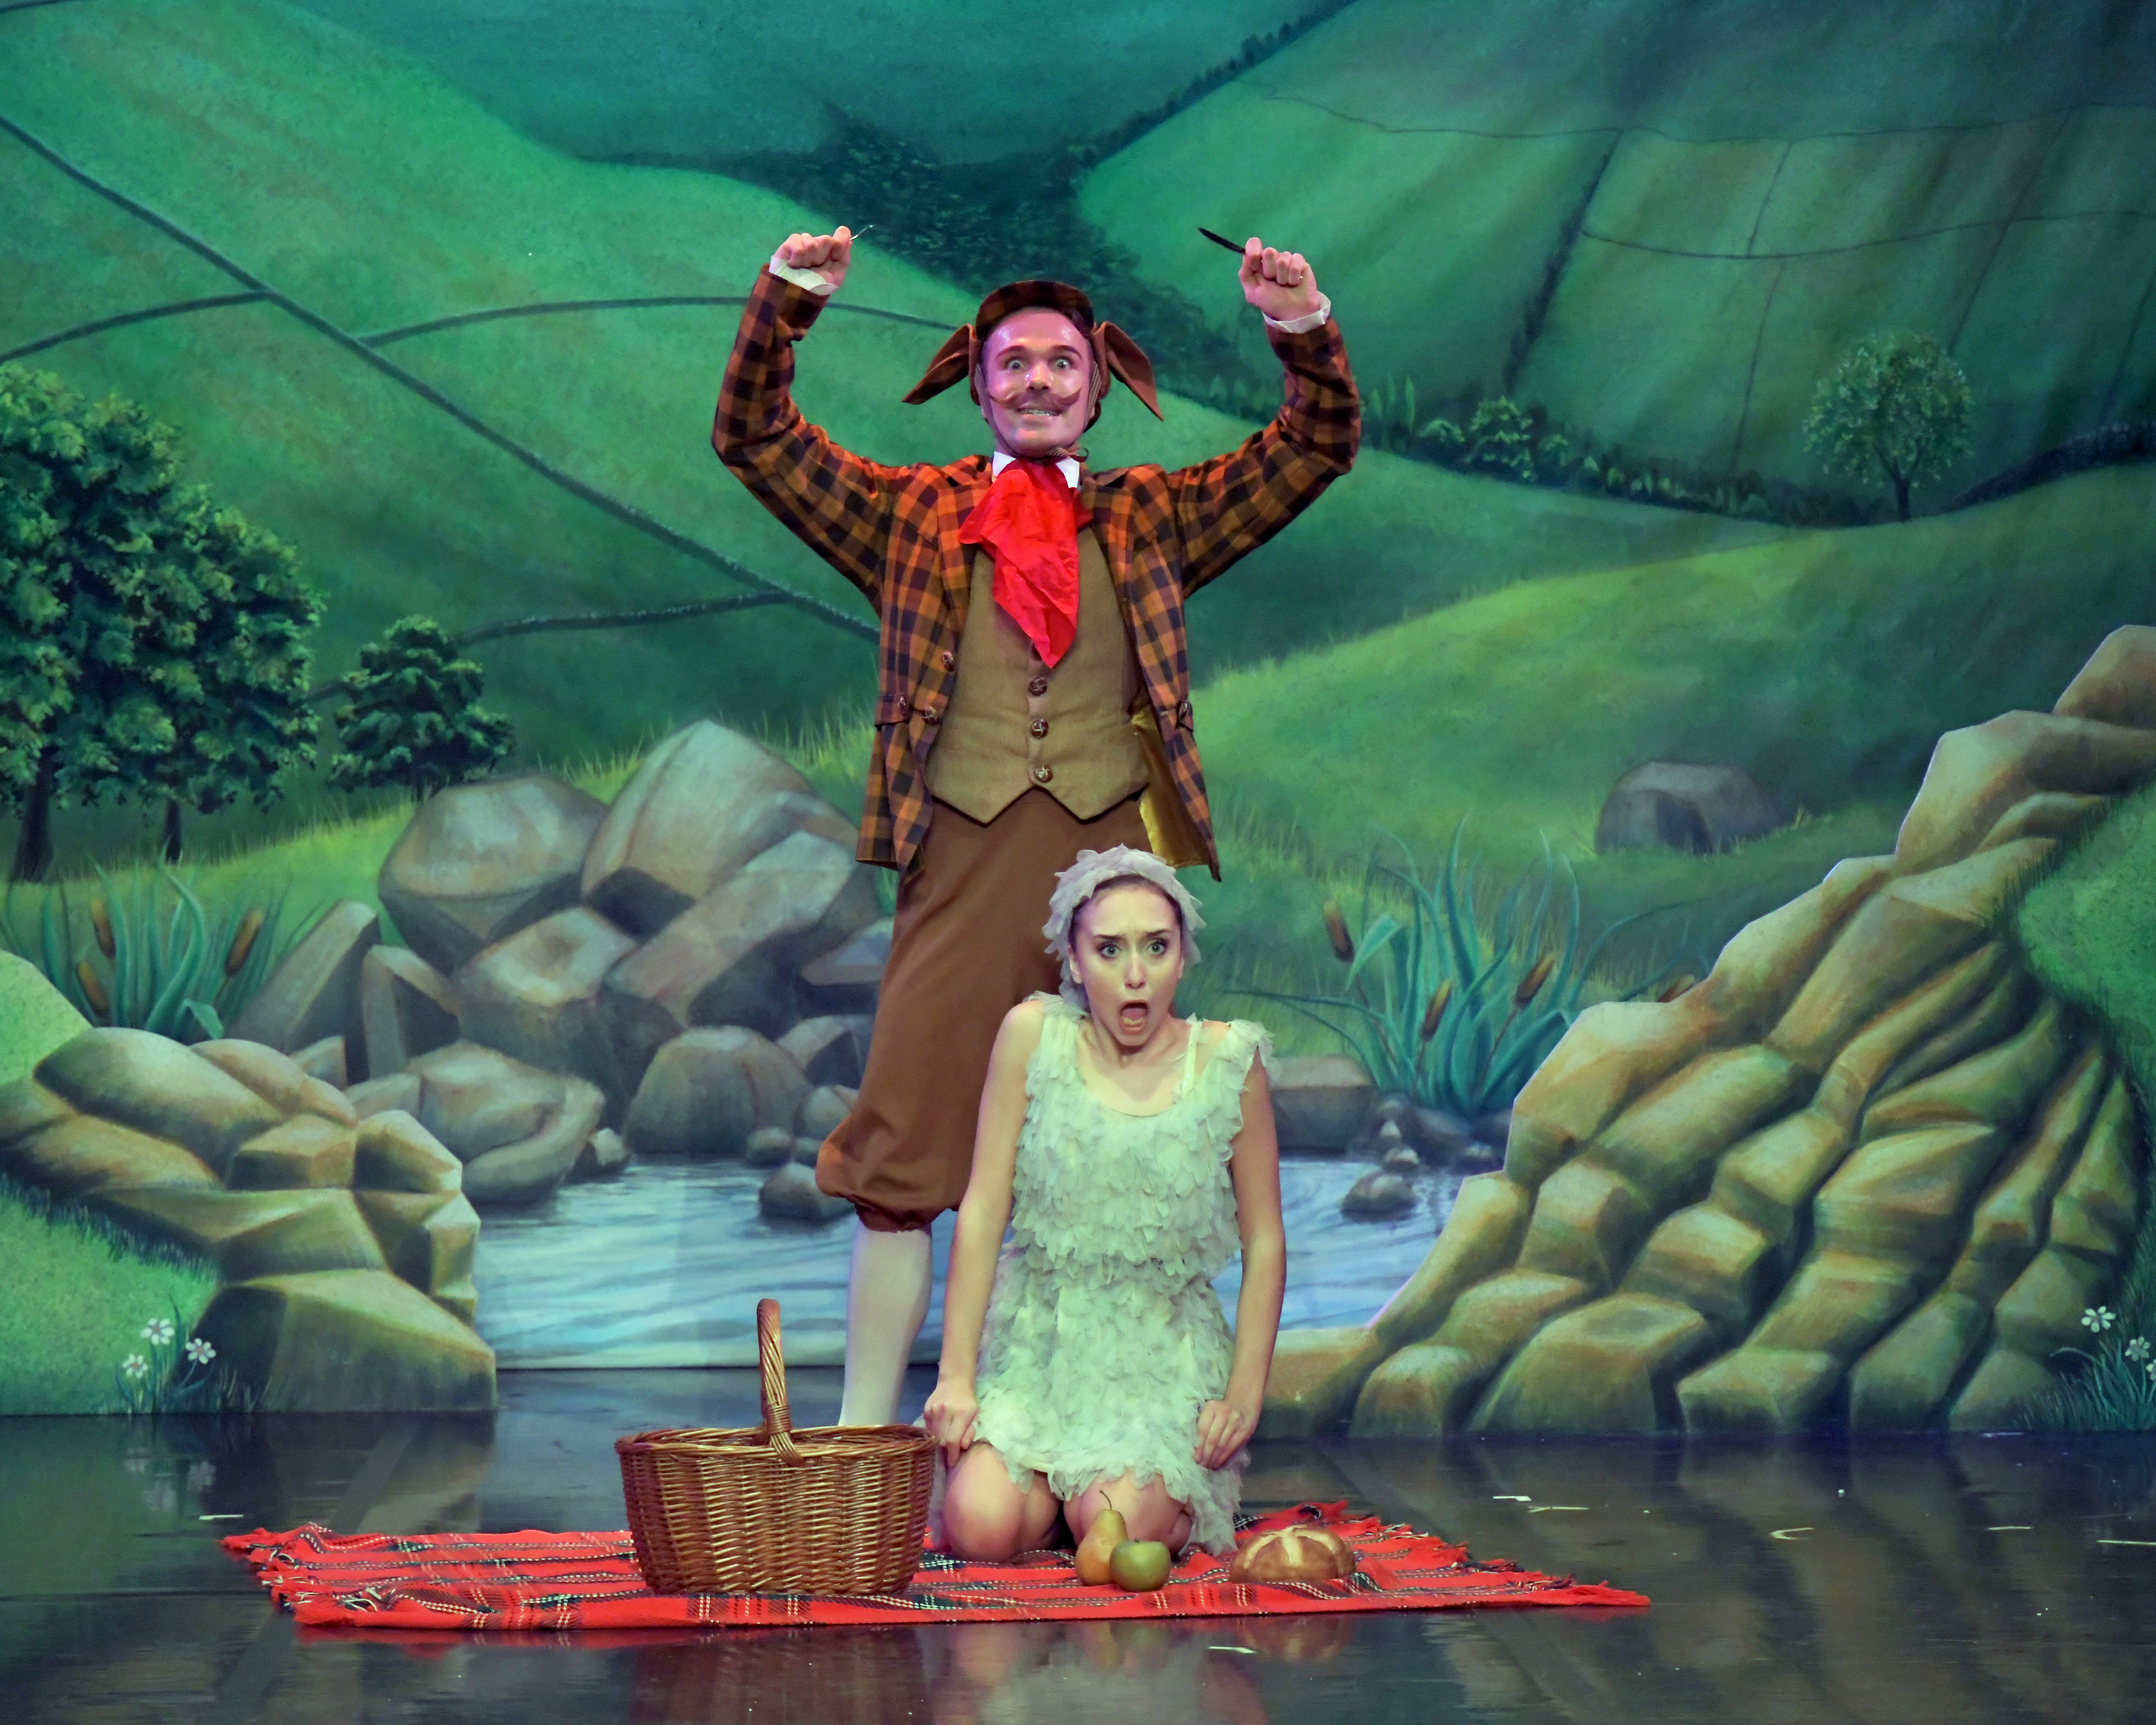 14 Archie James and Carlotta Pini in Ugly Duckling